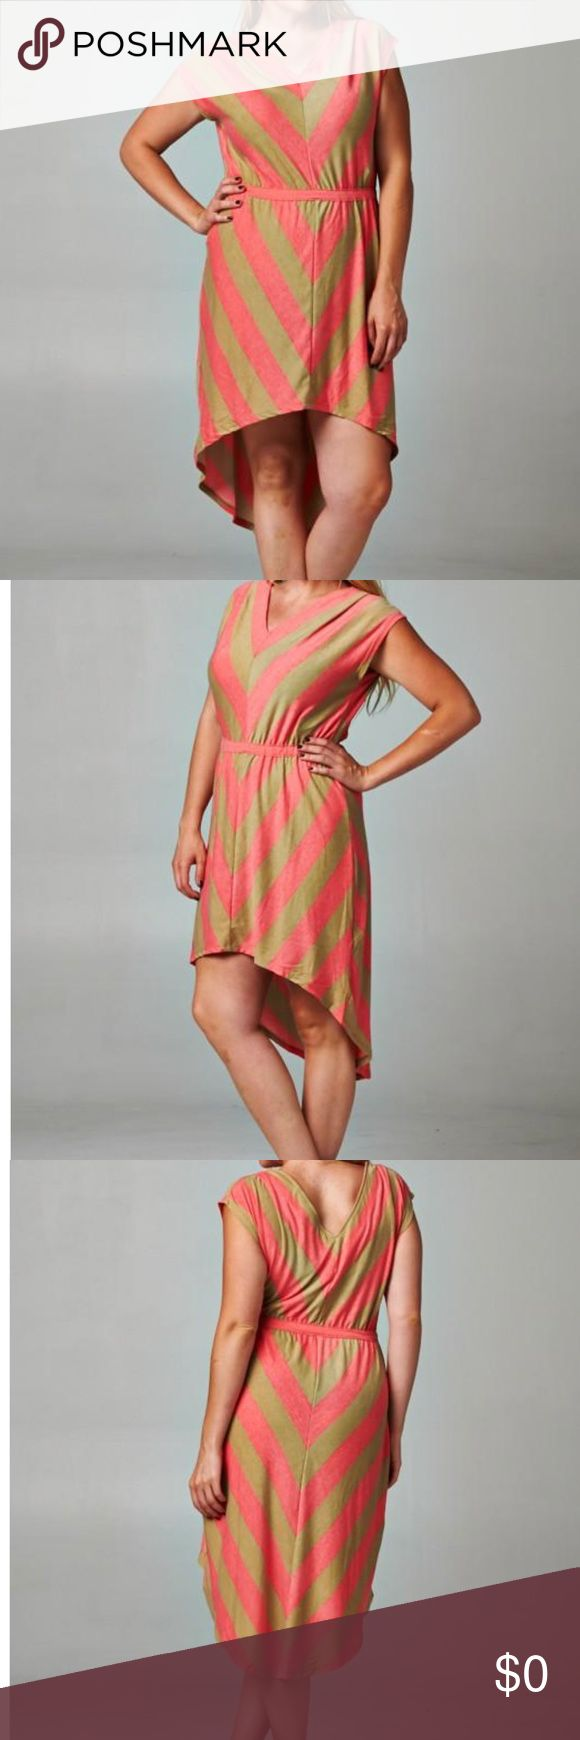 Plus Size Chevron Stripe Hi-Low Dress What a fun piece for any wardrobe! Dress it up with some strappy sandals or a pair of wedges. 95% Polyester, 5% Spandex. PRICE FIRM!!! Dresses High Low